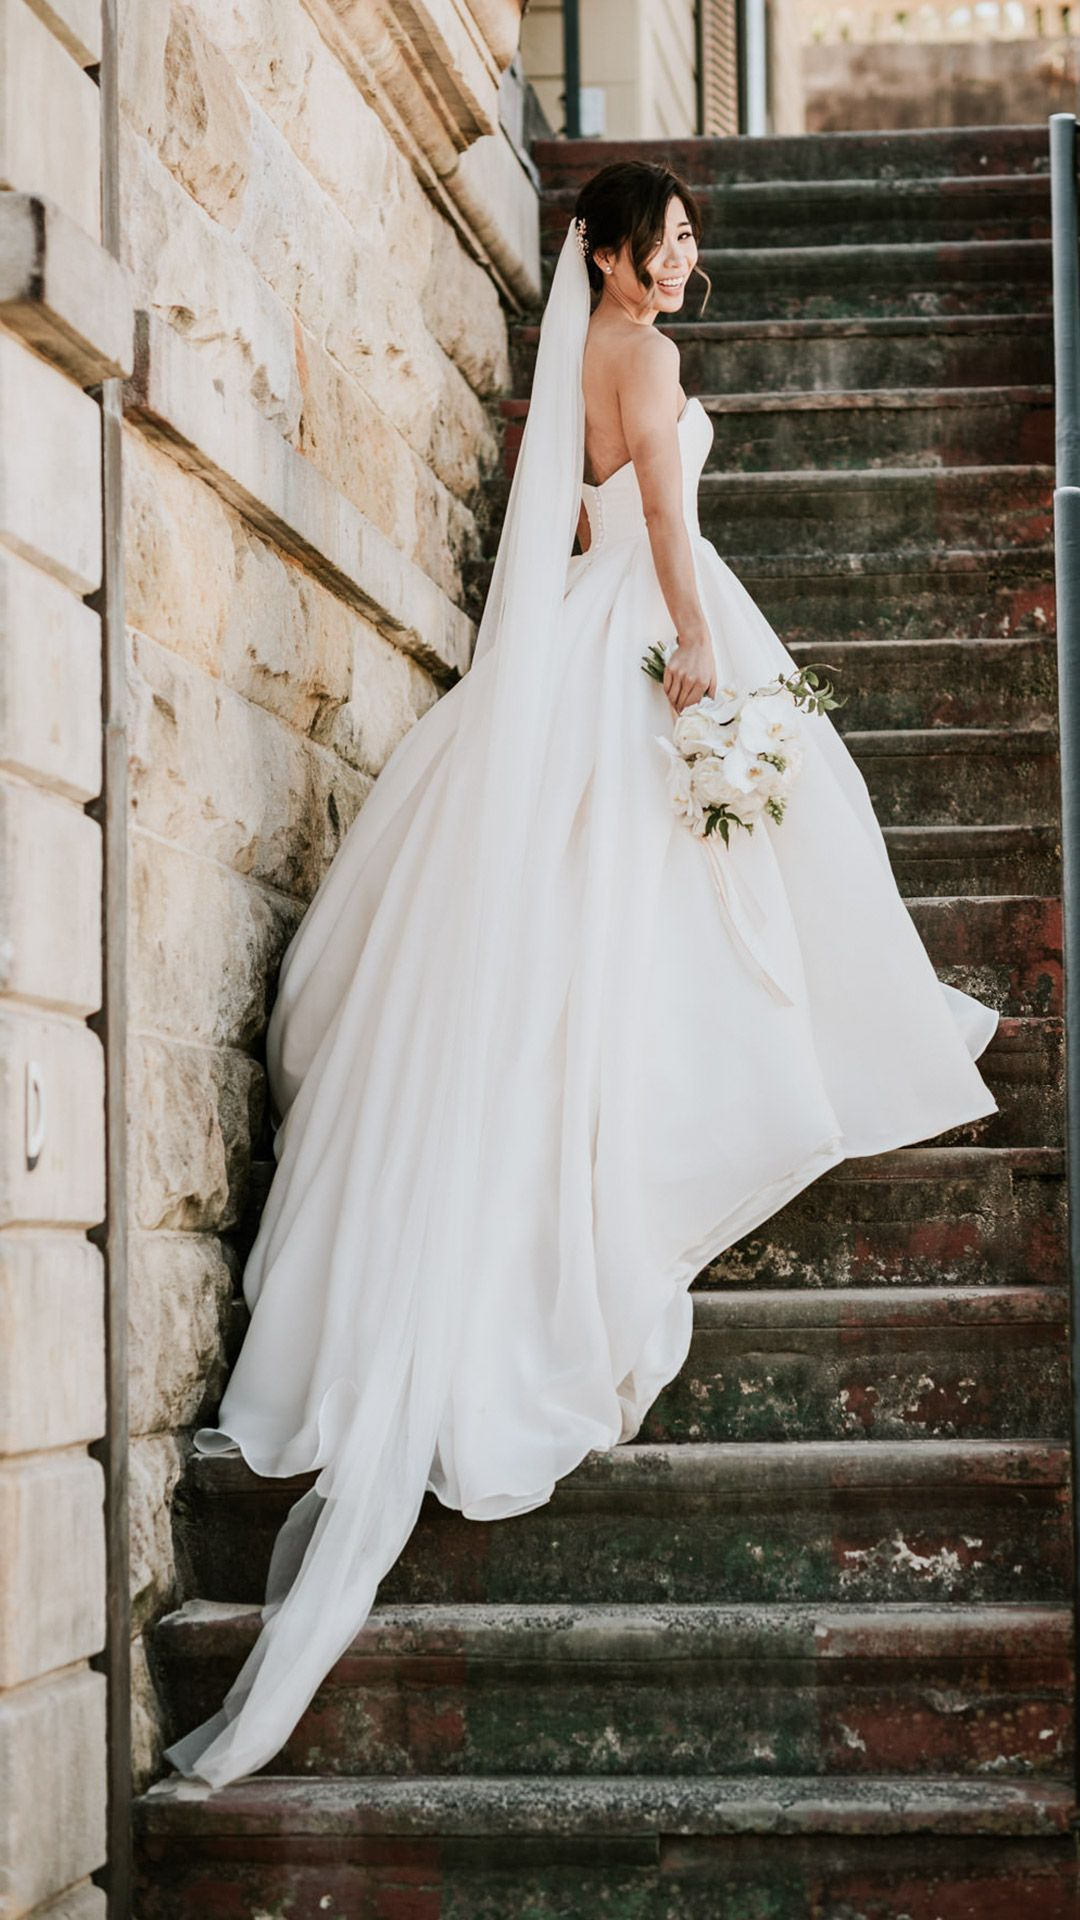 BIANCA by Maggie Sottero Wedding Dresses in 2020 Wedding